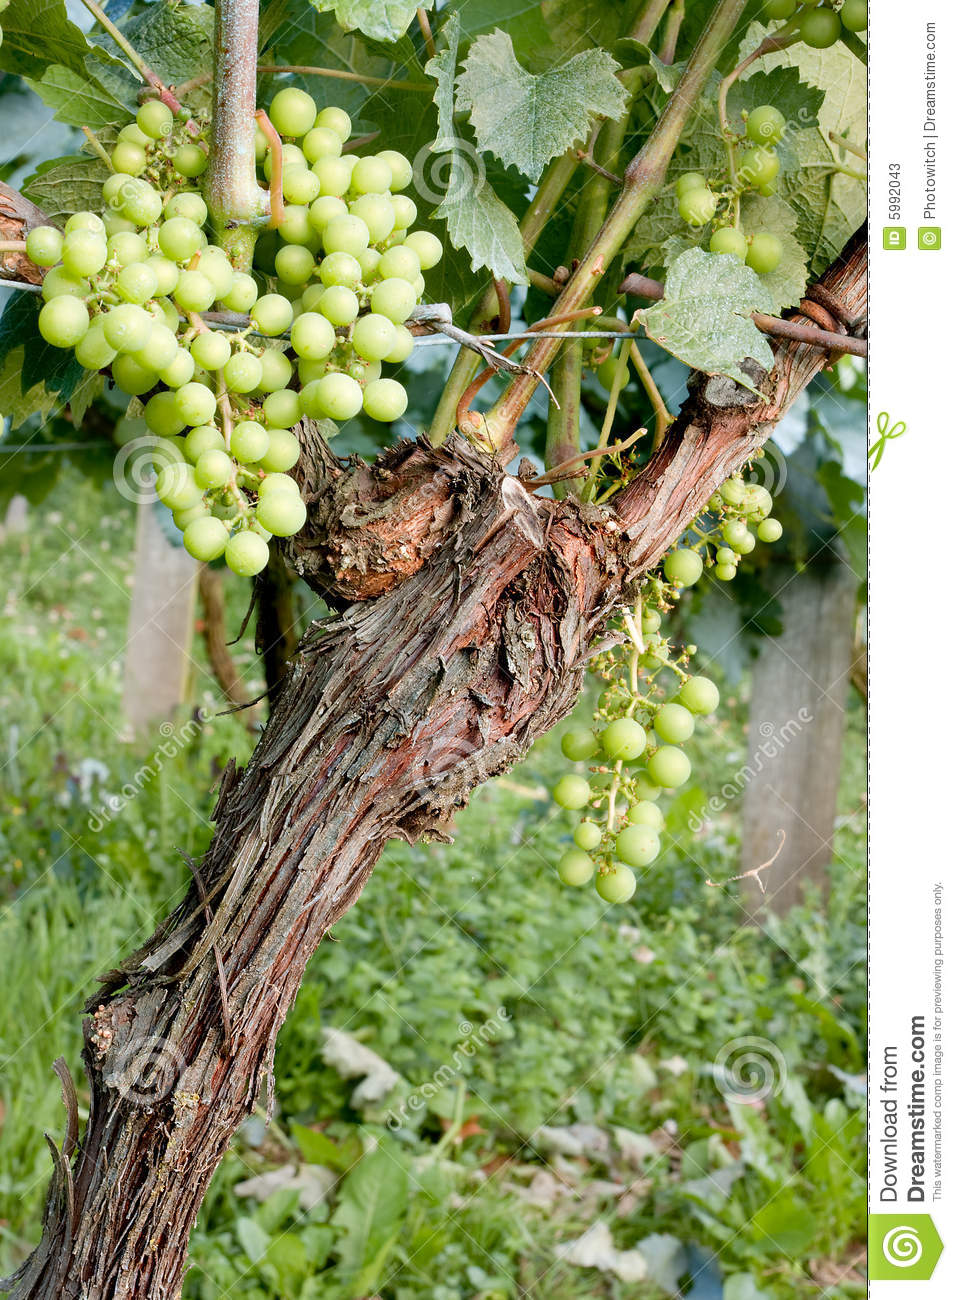 Closeup of a single grapevine in a French vineyard.